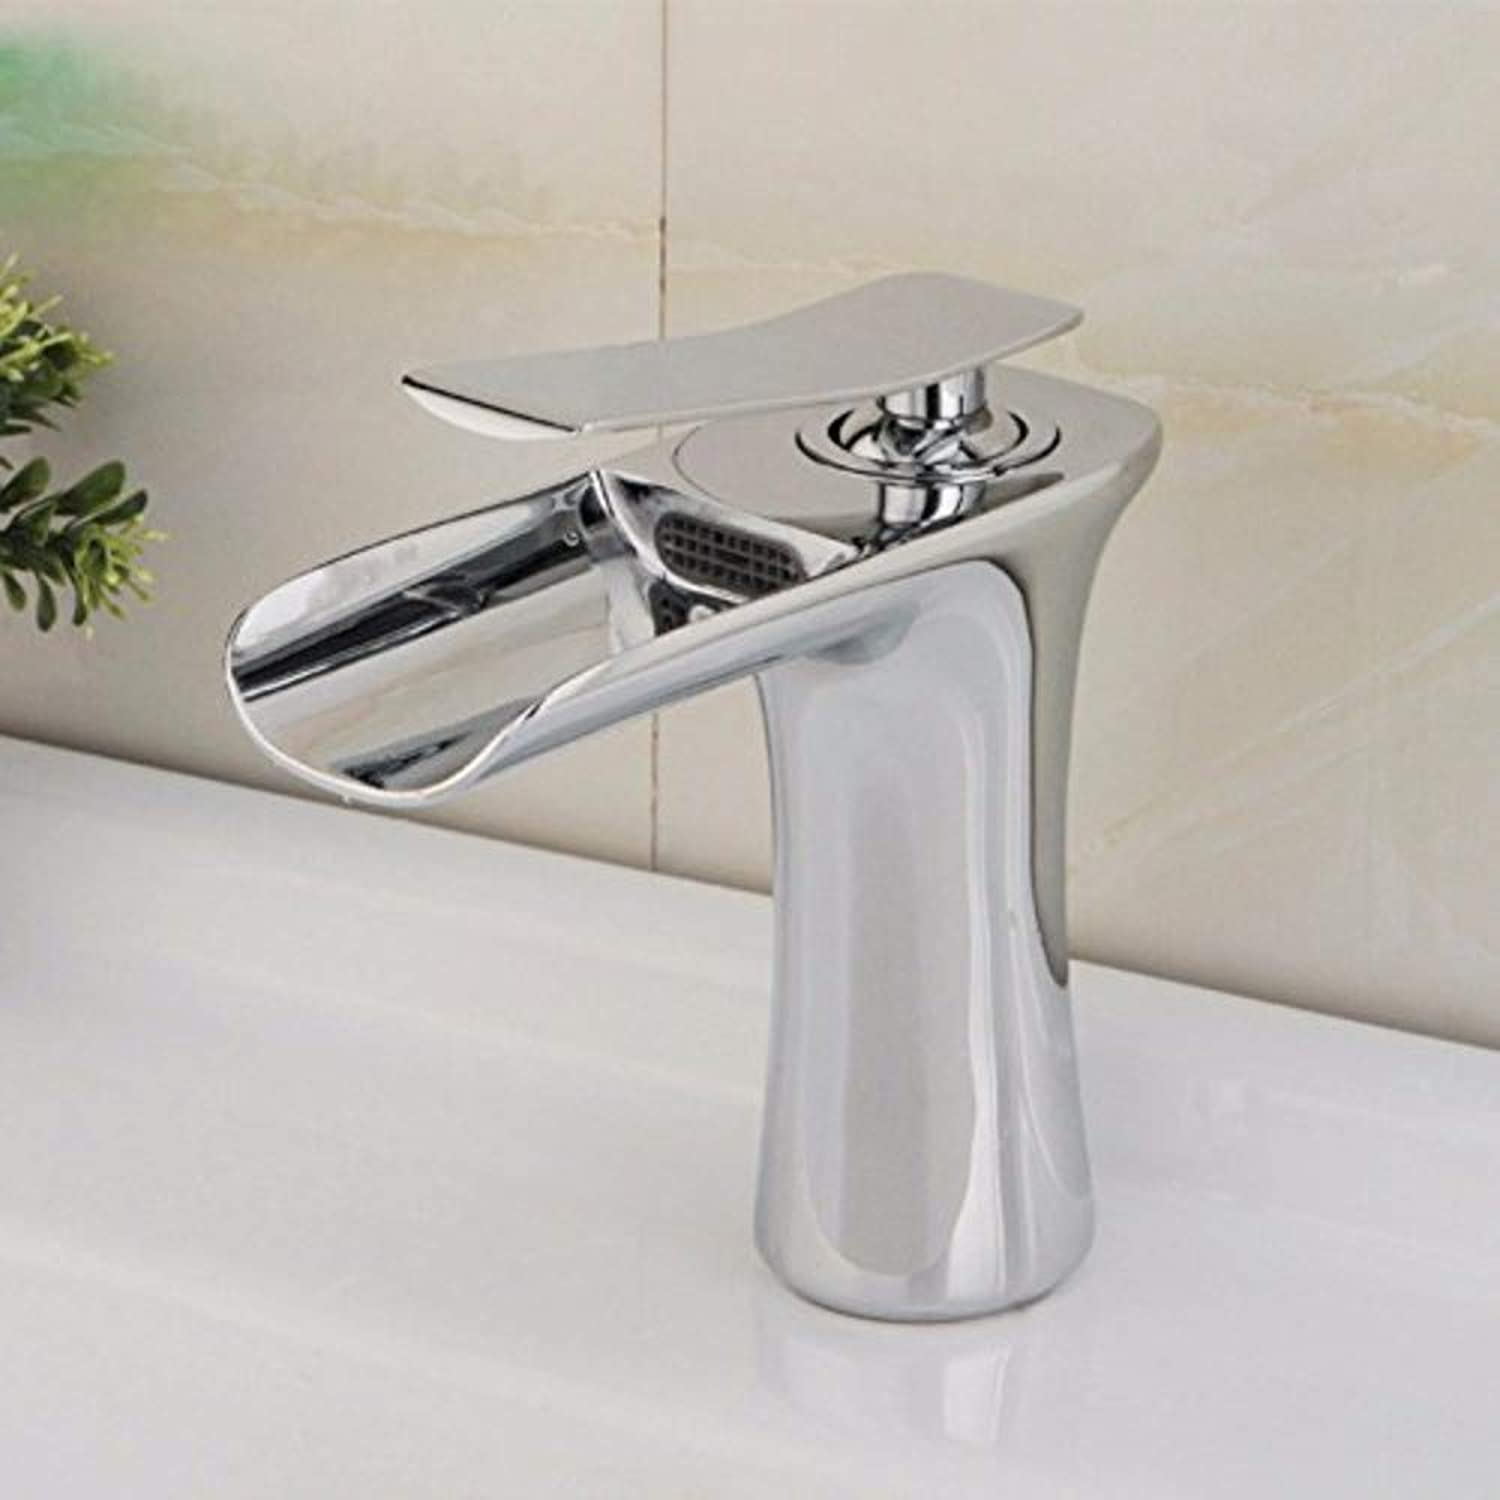 360° redating Faucet Retro Faucet The Copper Lead Type Basin Mixer Sit-On Household High Quality Faucets